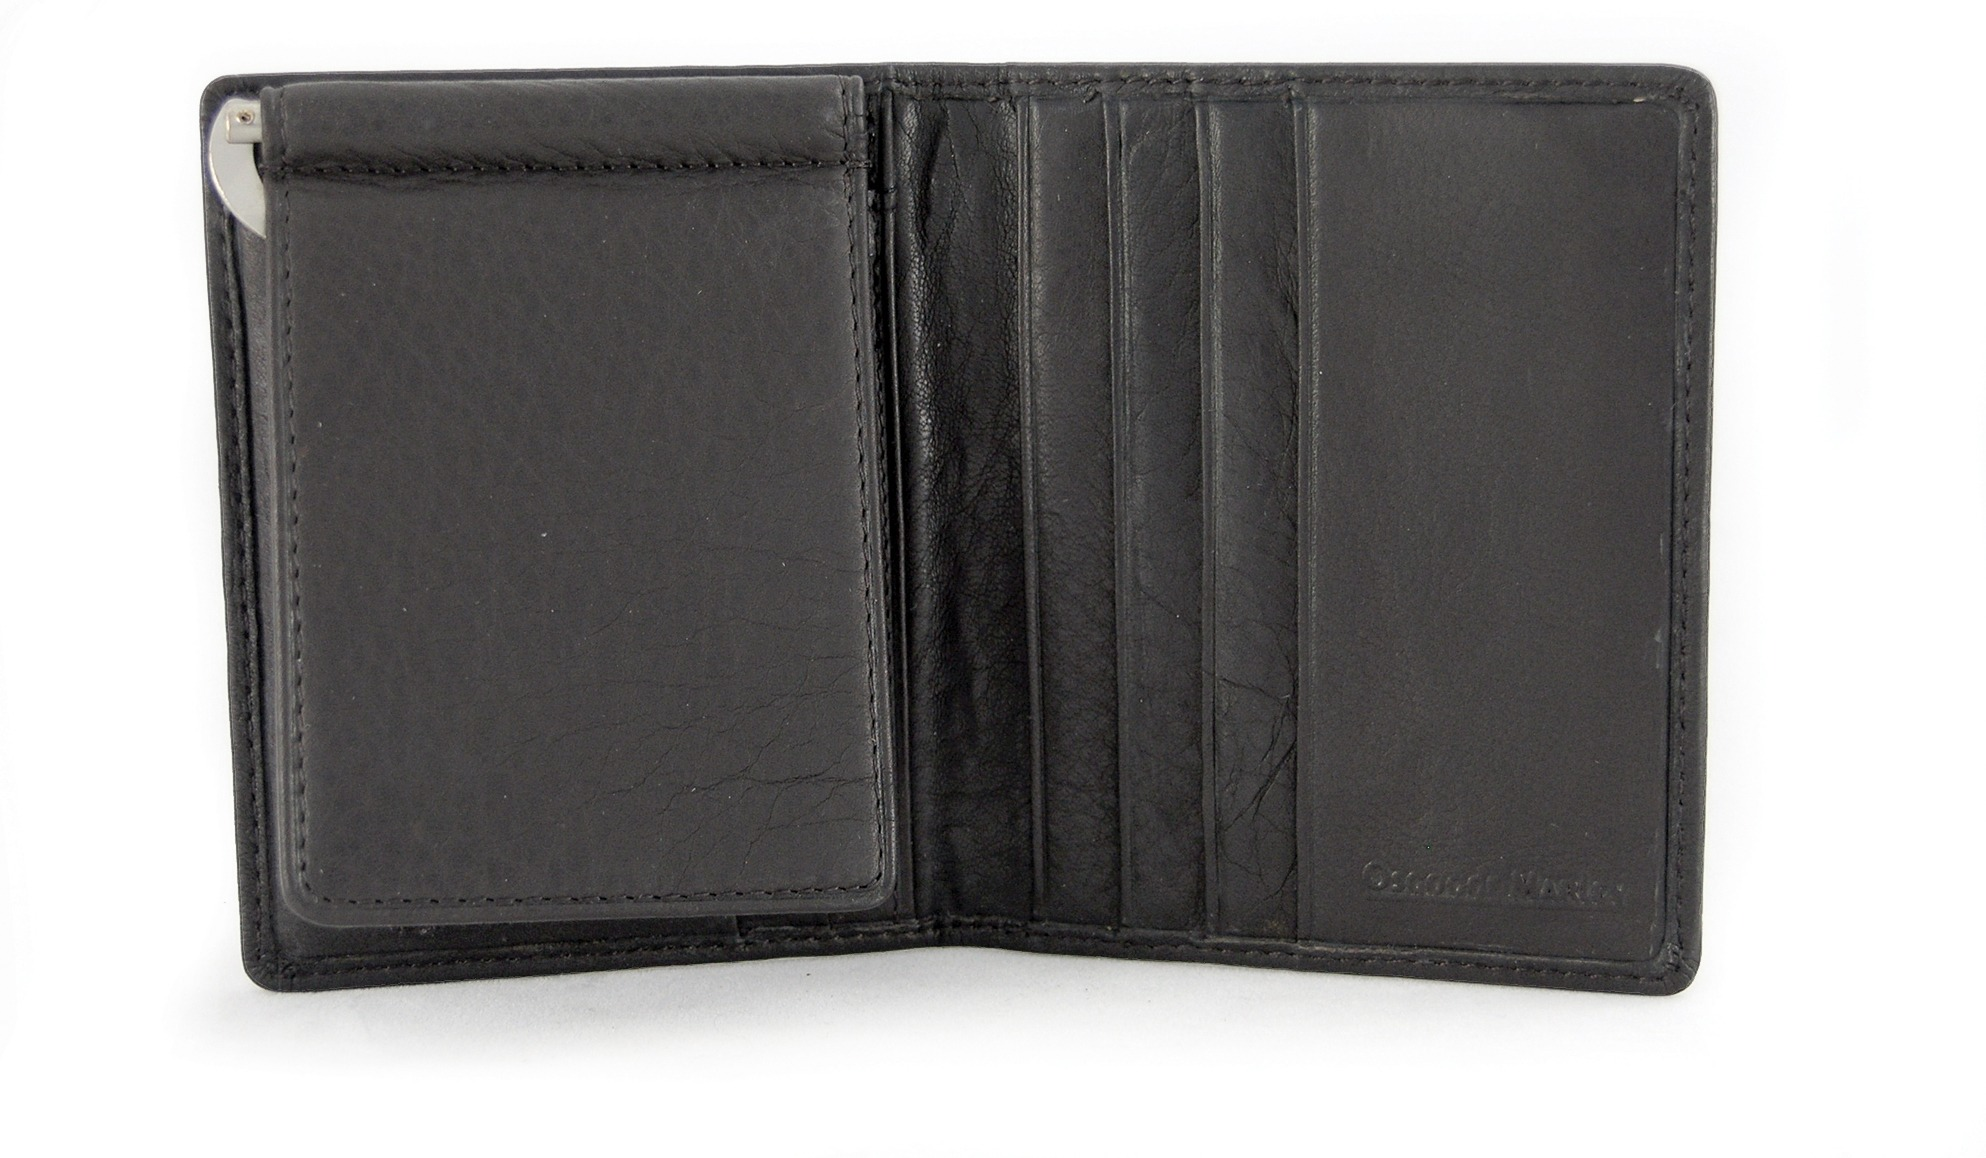 Osgoode Marley #1519 Removable Money Clip Bifold